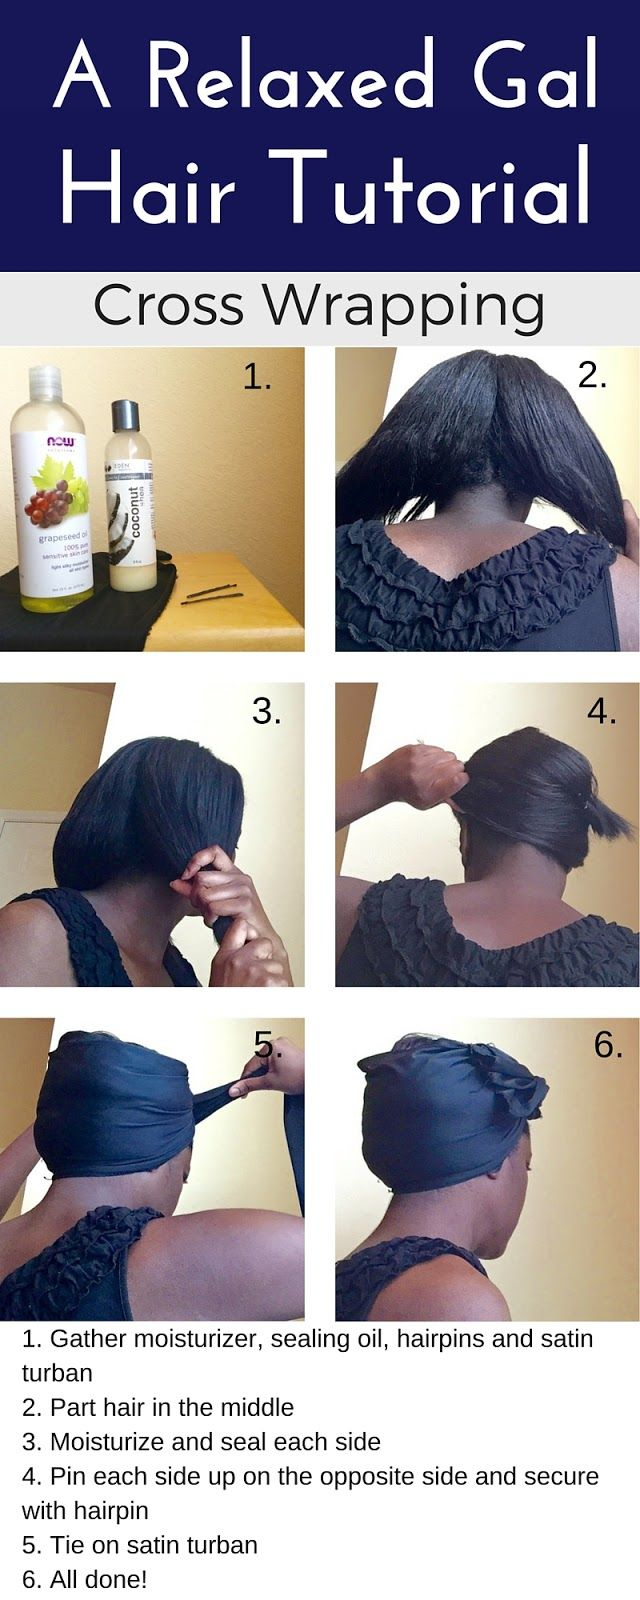 A Relaxed Gal Hair Tutorial on Cross Wrapping | arelaxedgal.com